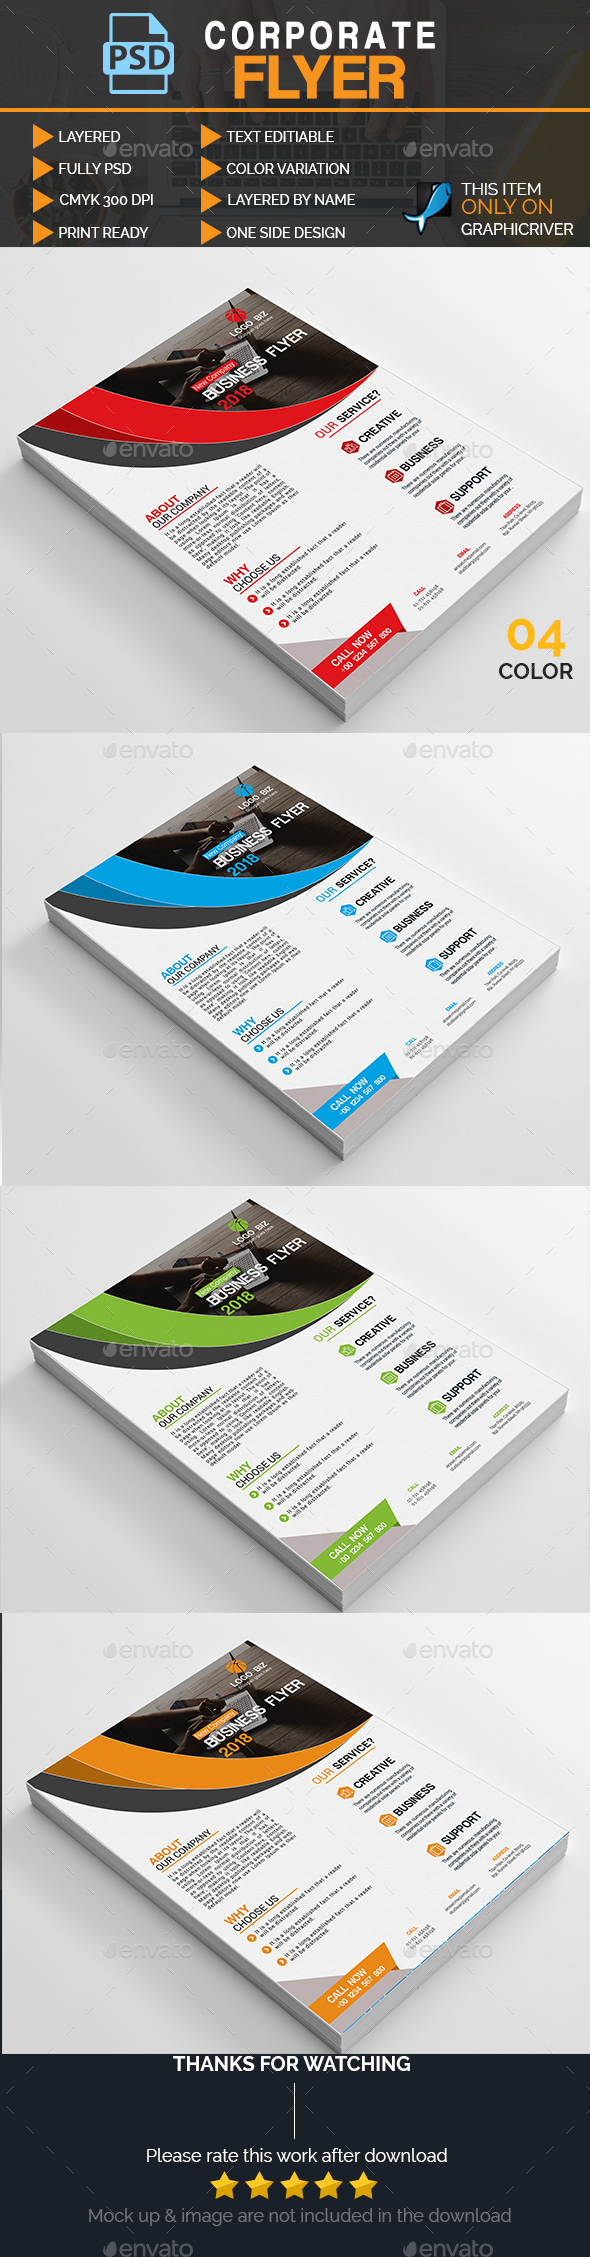 GraphicRiver Corporate Flyer 20962191